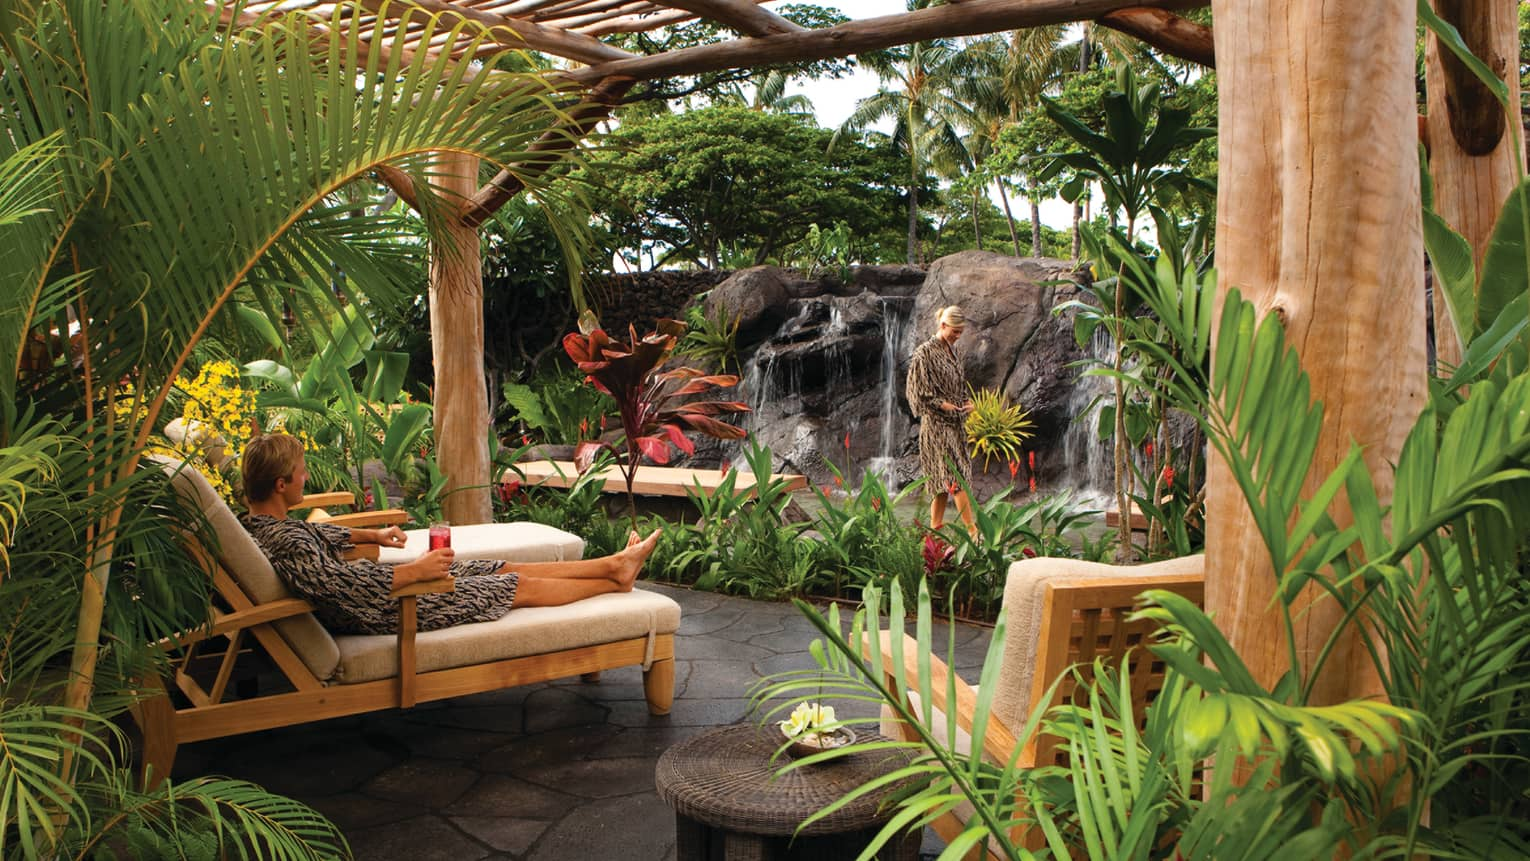 Man in robe lounges on chair with drink in Waiea tropical garden at spa